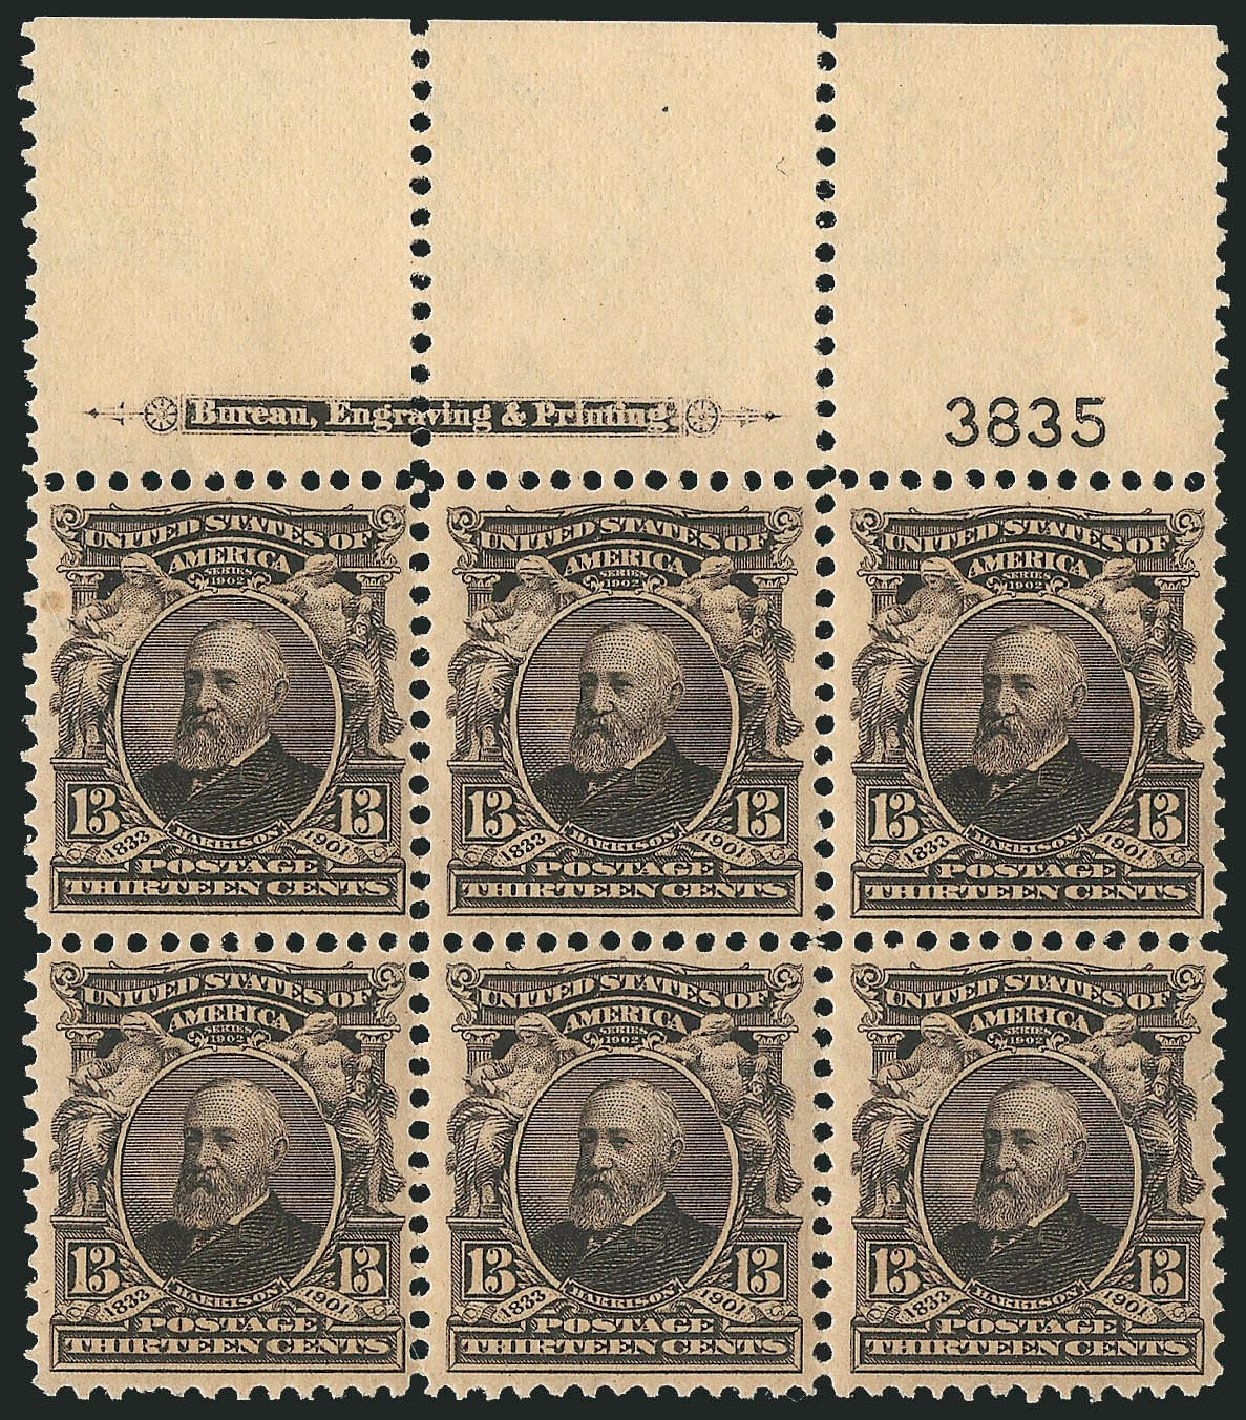 US Stamp Price Scott Catalog 308 - 1902 13c Harrison. Robert Siegel Auction Galleries, Feb 2015, Sale 1093, Lot 19